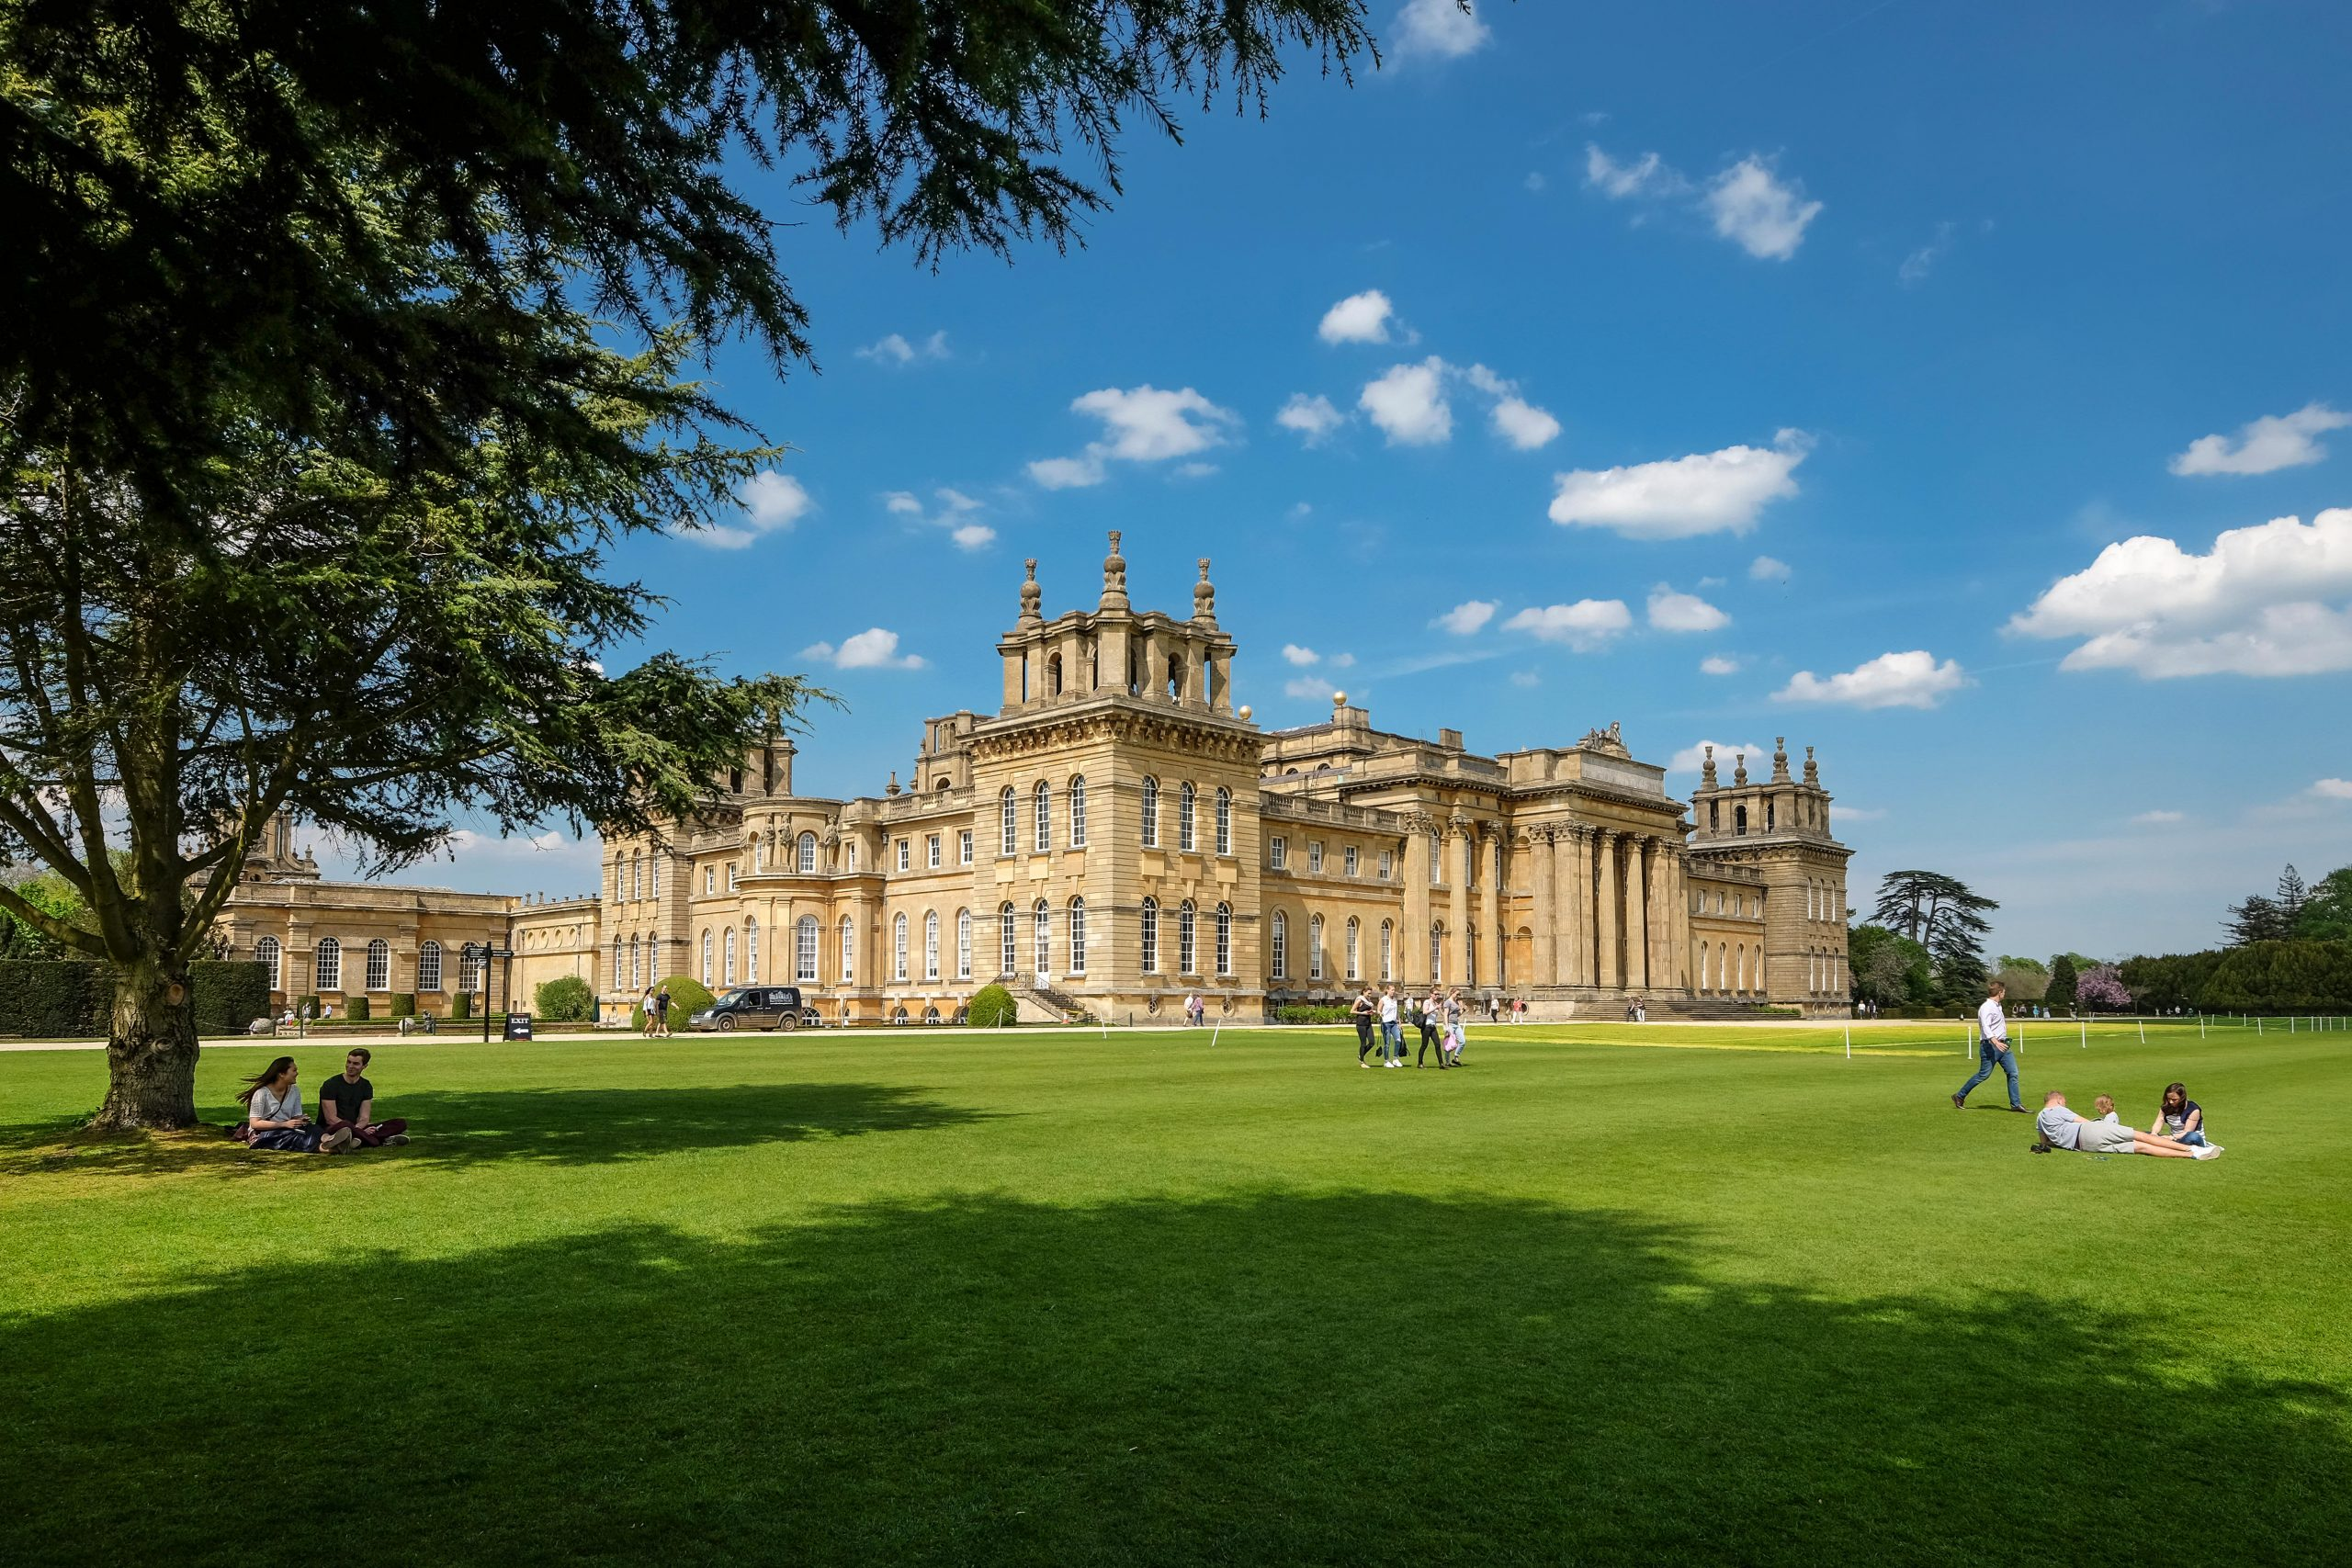 Blenheim Palace stately home